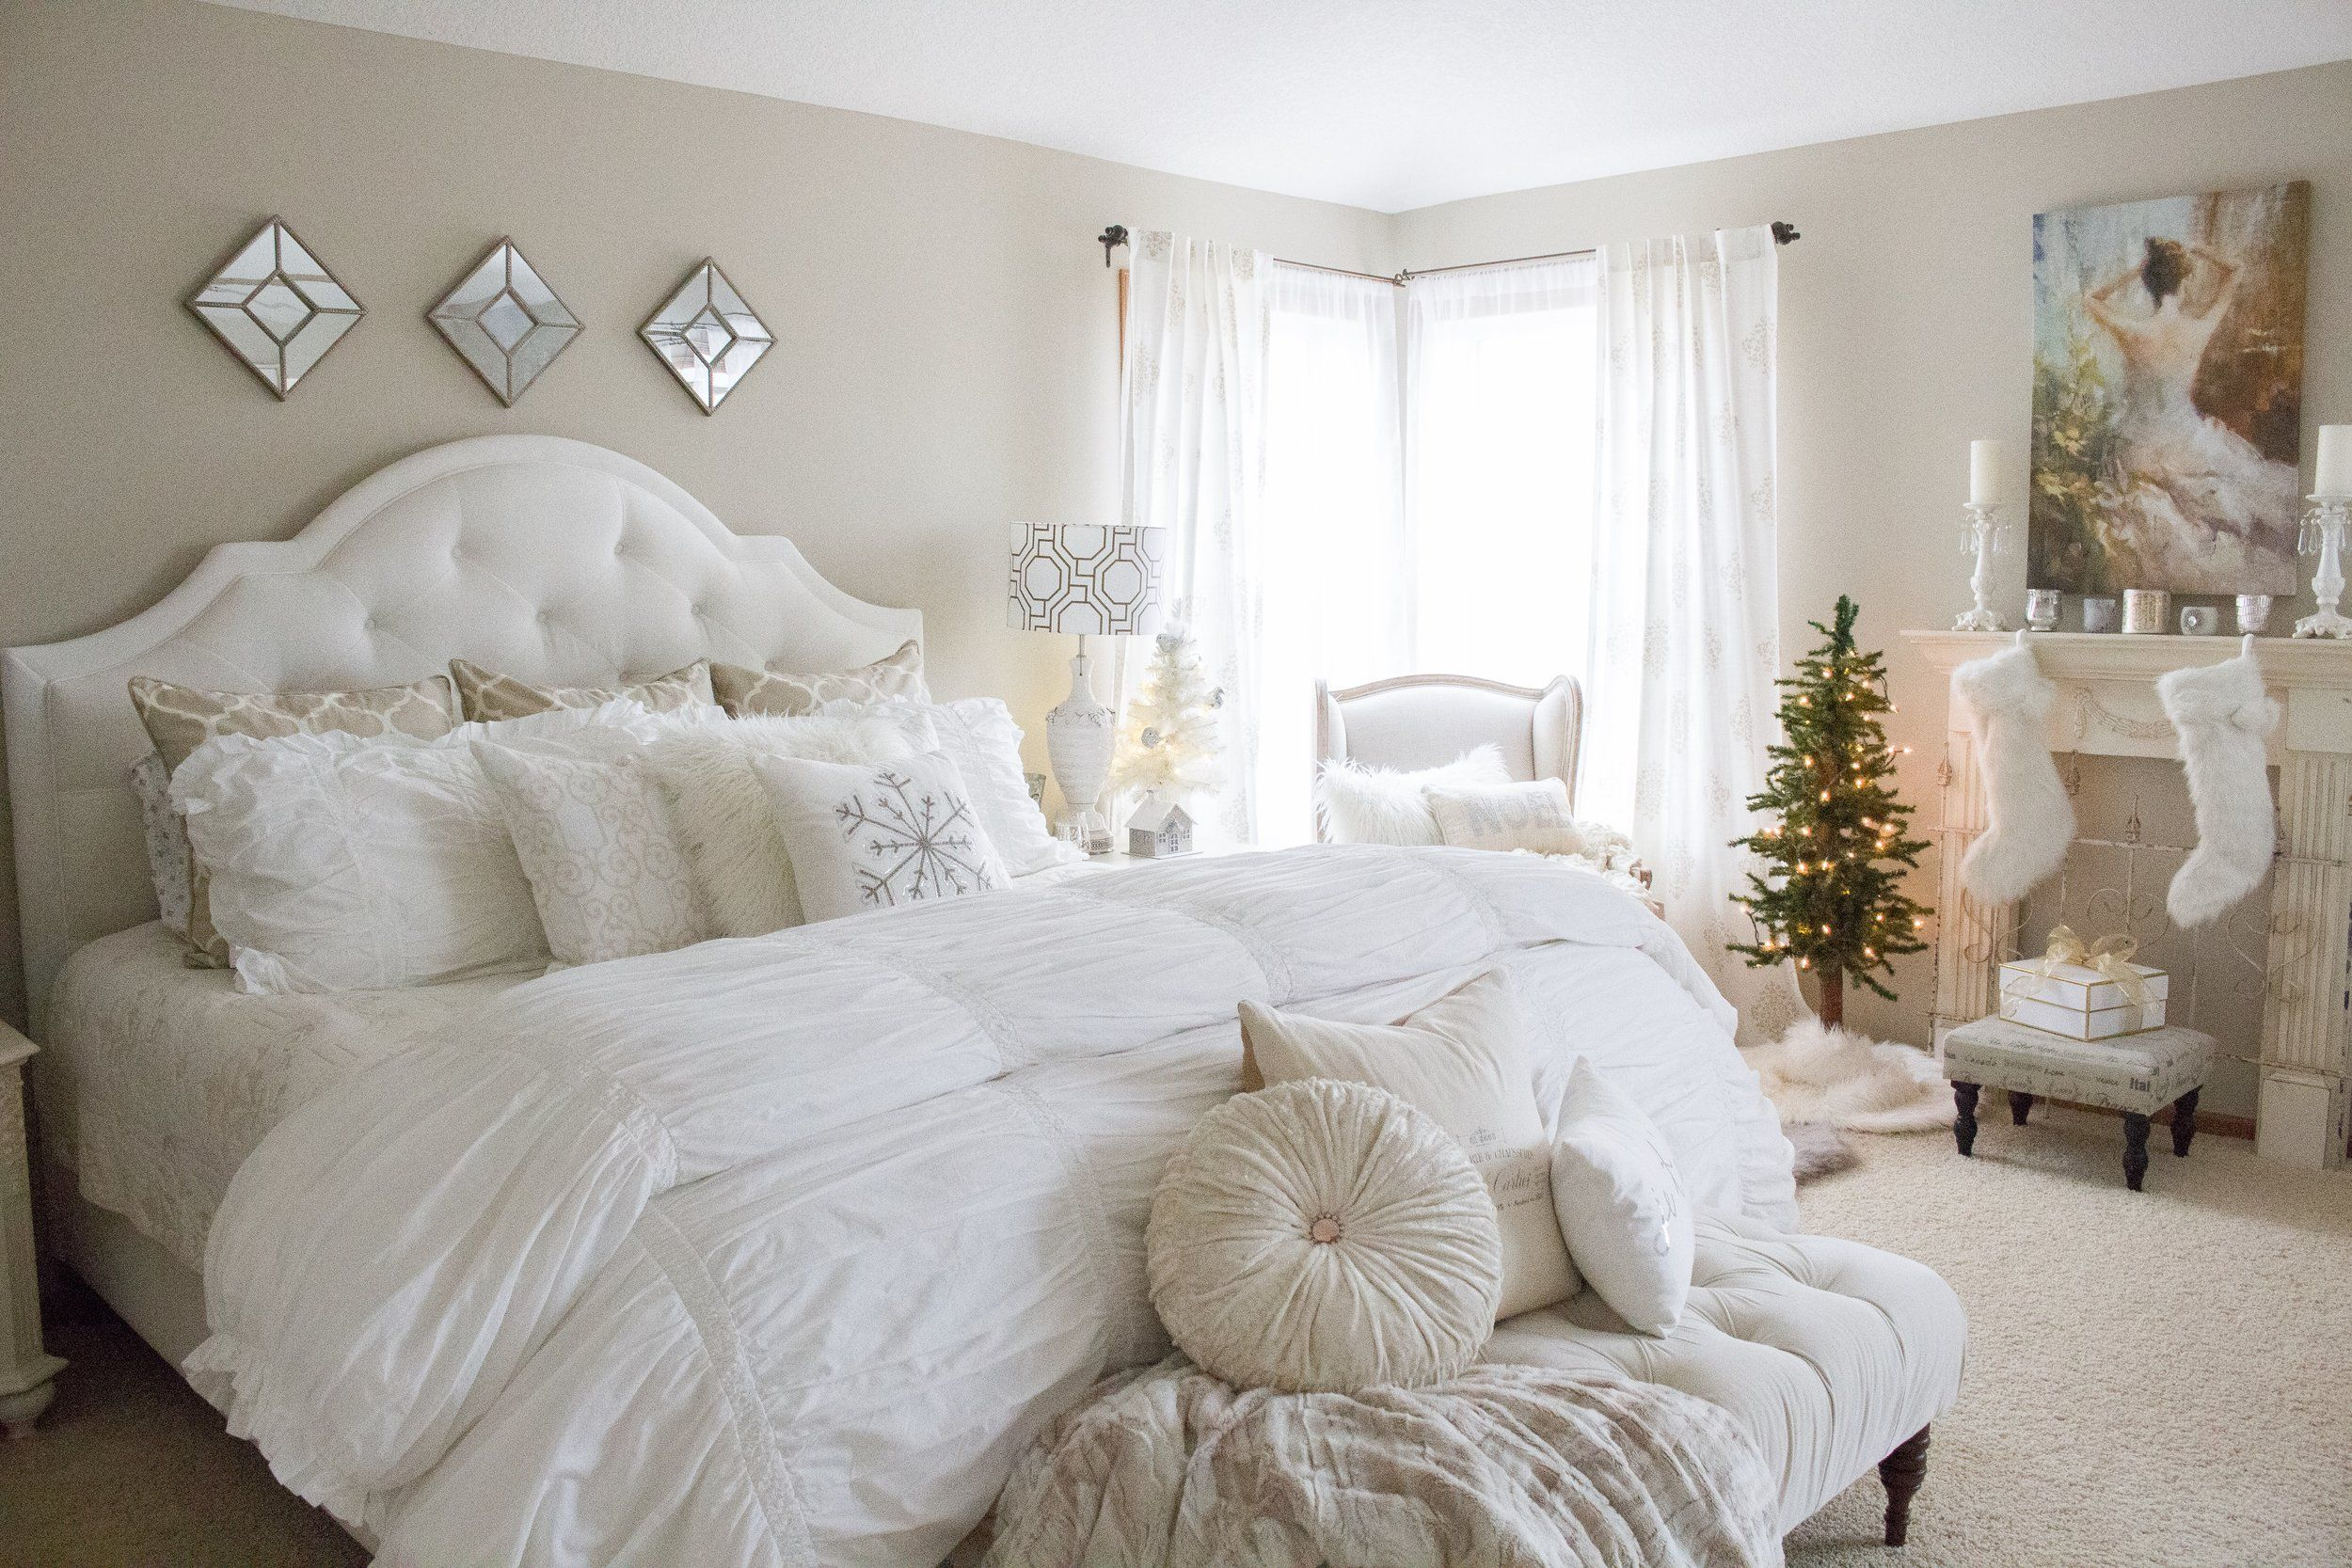 Adding Glam to Christmas Decor | Bedroom styles, Bedroom ...